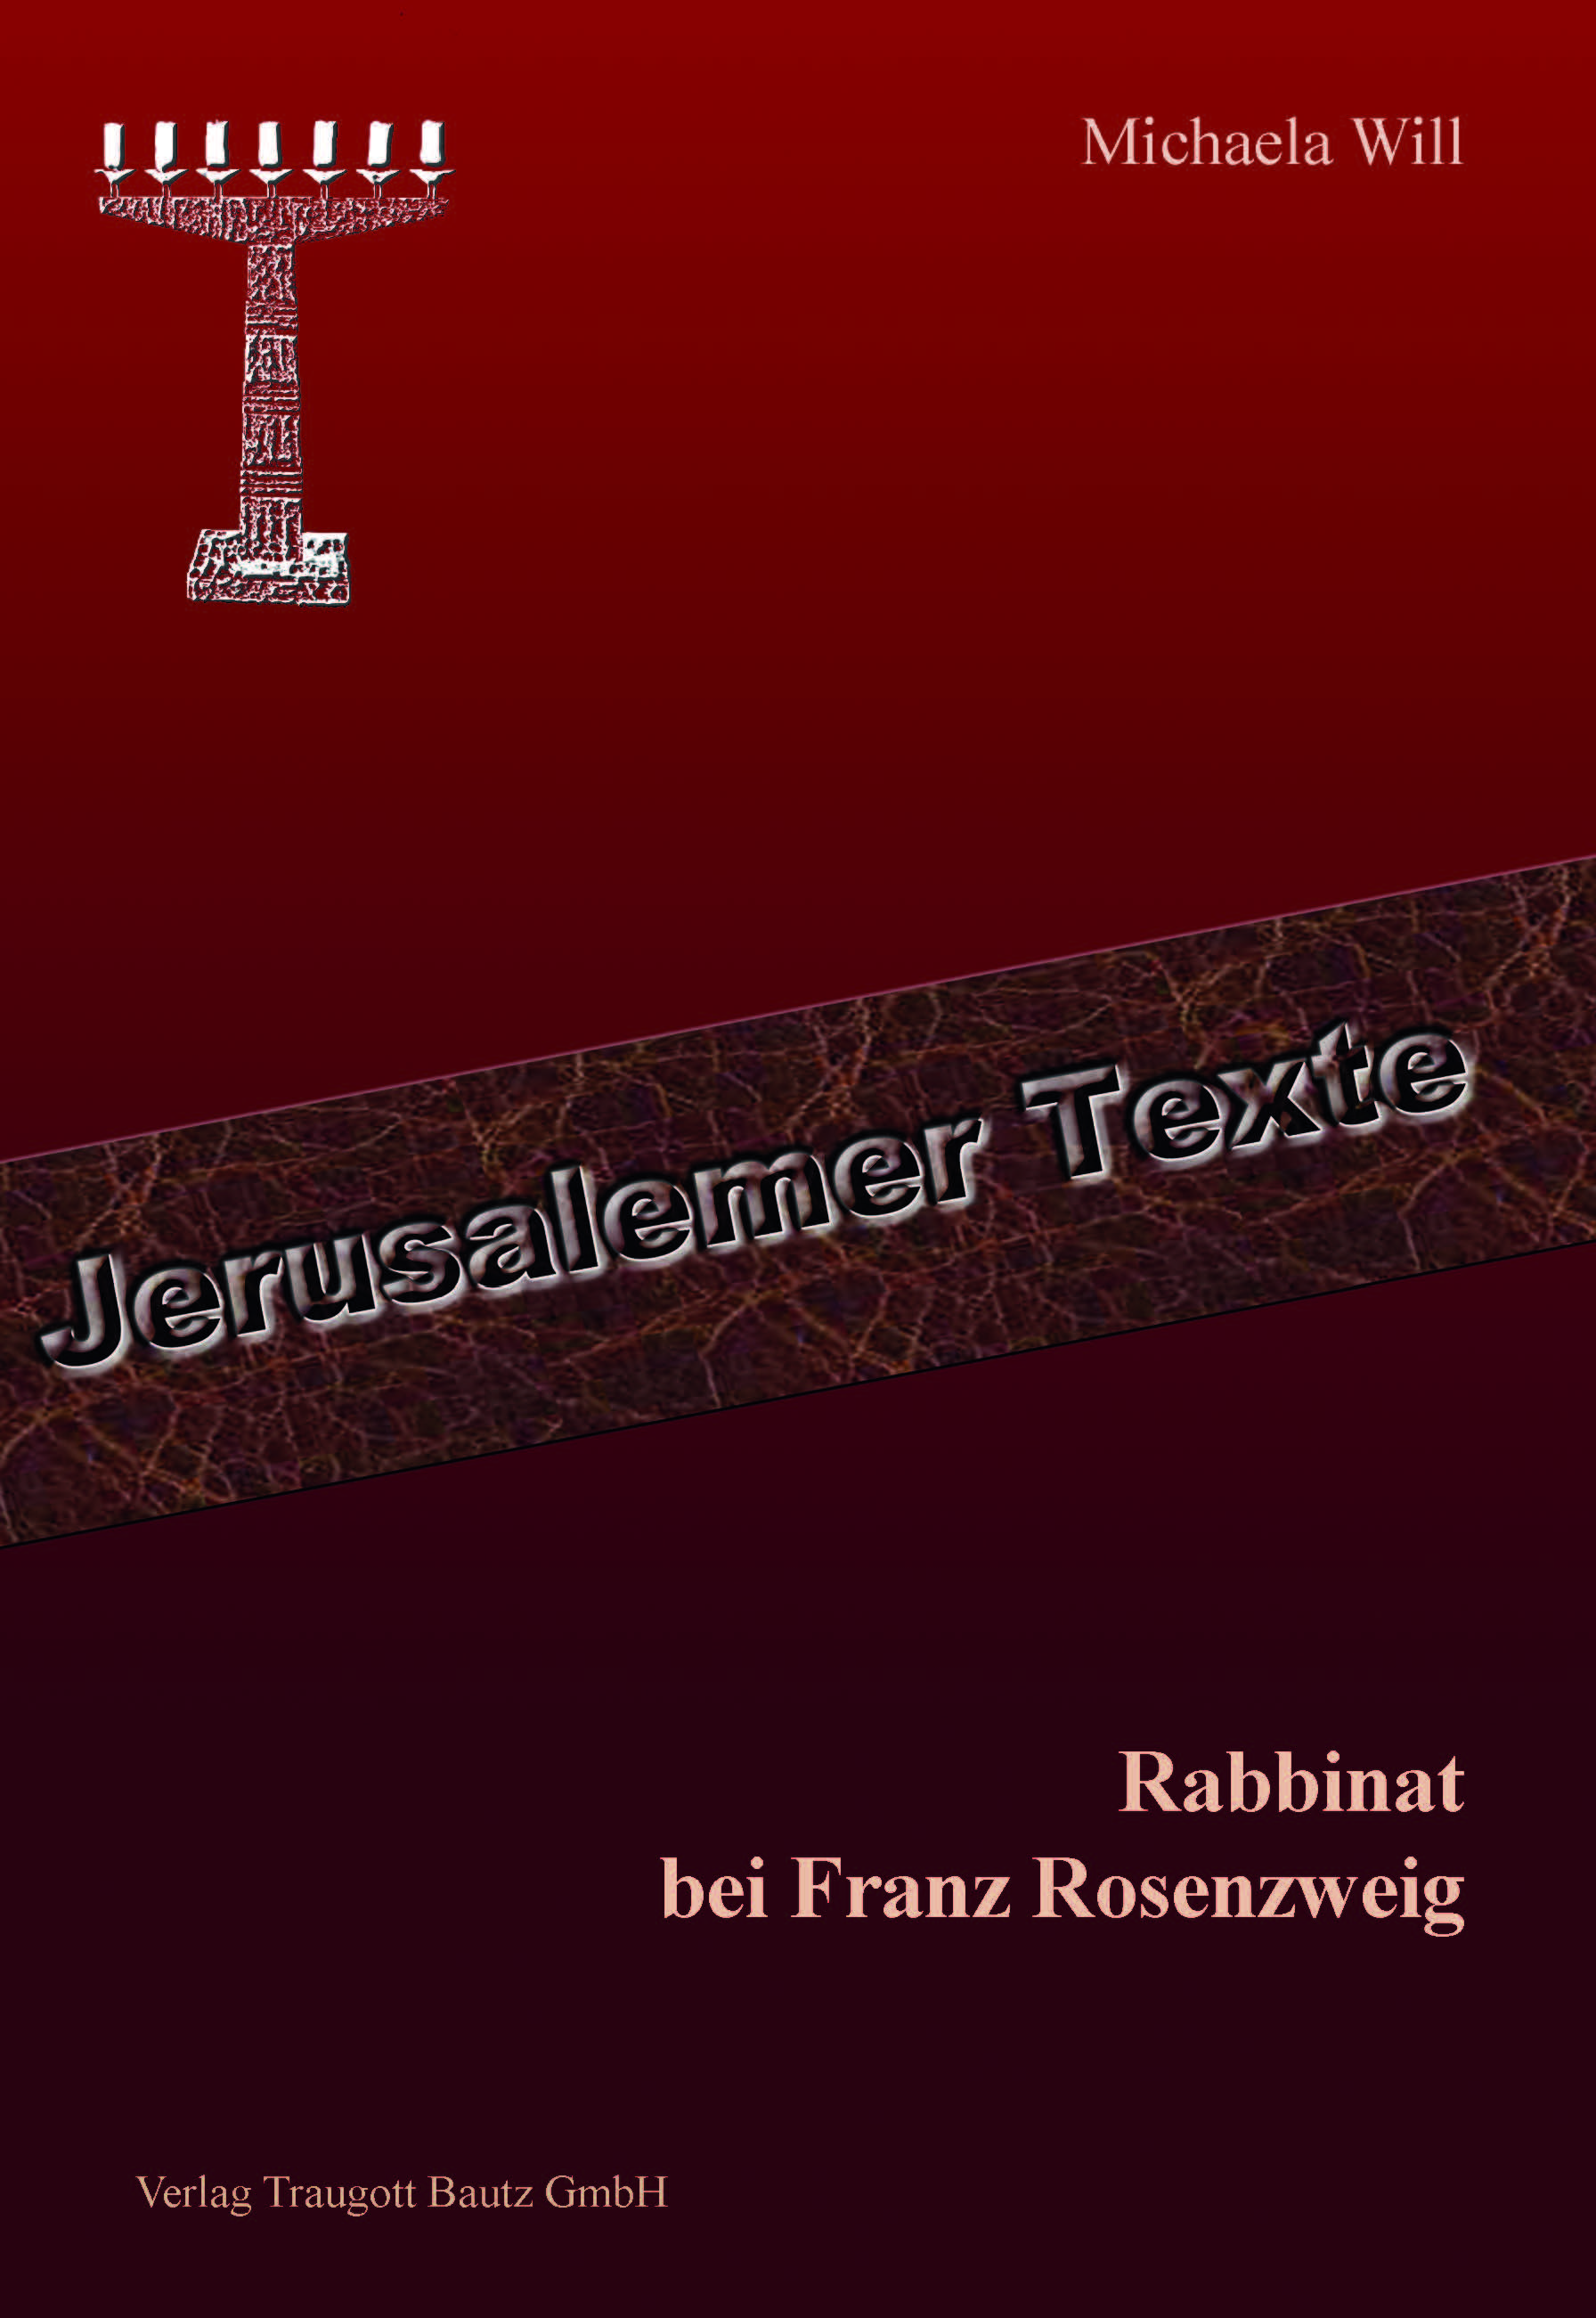 jerusalem texte band17